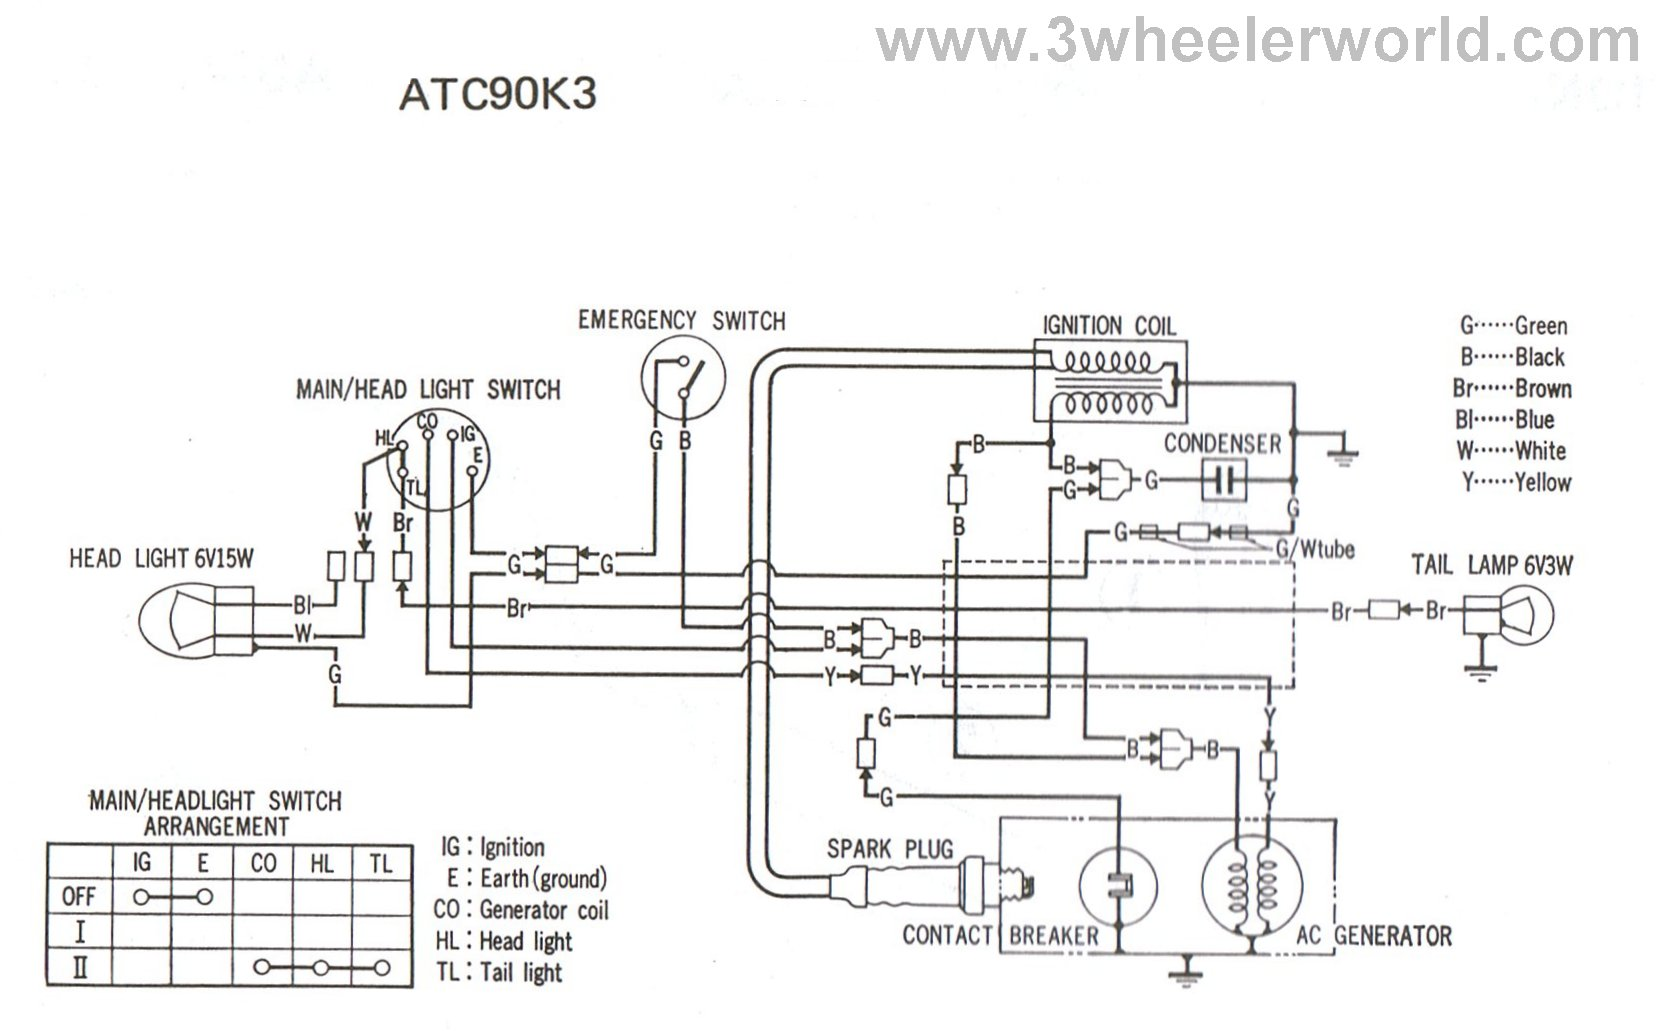 ATC90K3HM polaris predator 90 wiring diagram polaris 90 service manual 1995 polaris scrambler wiring diagram at pacquiaovsvargaslive.co